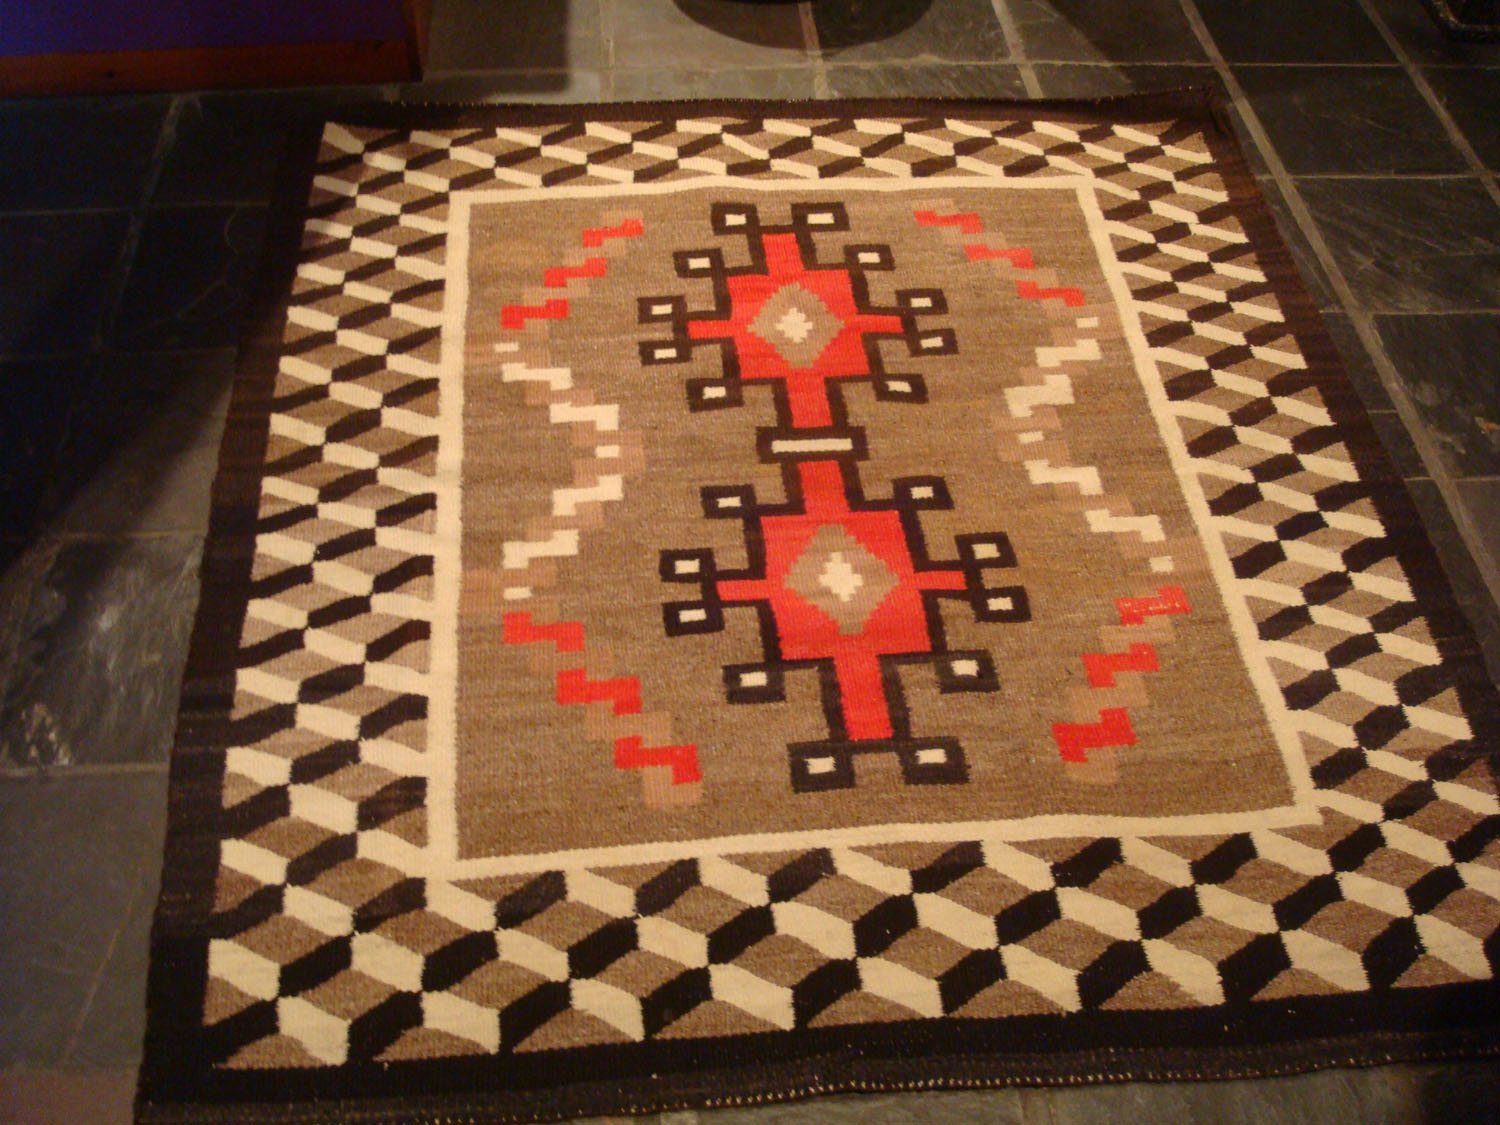 native american indian antique textiles and navajo vintage blankets and rugs a stunningly beautiful